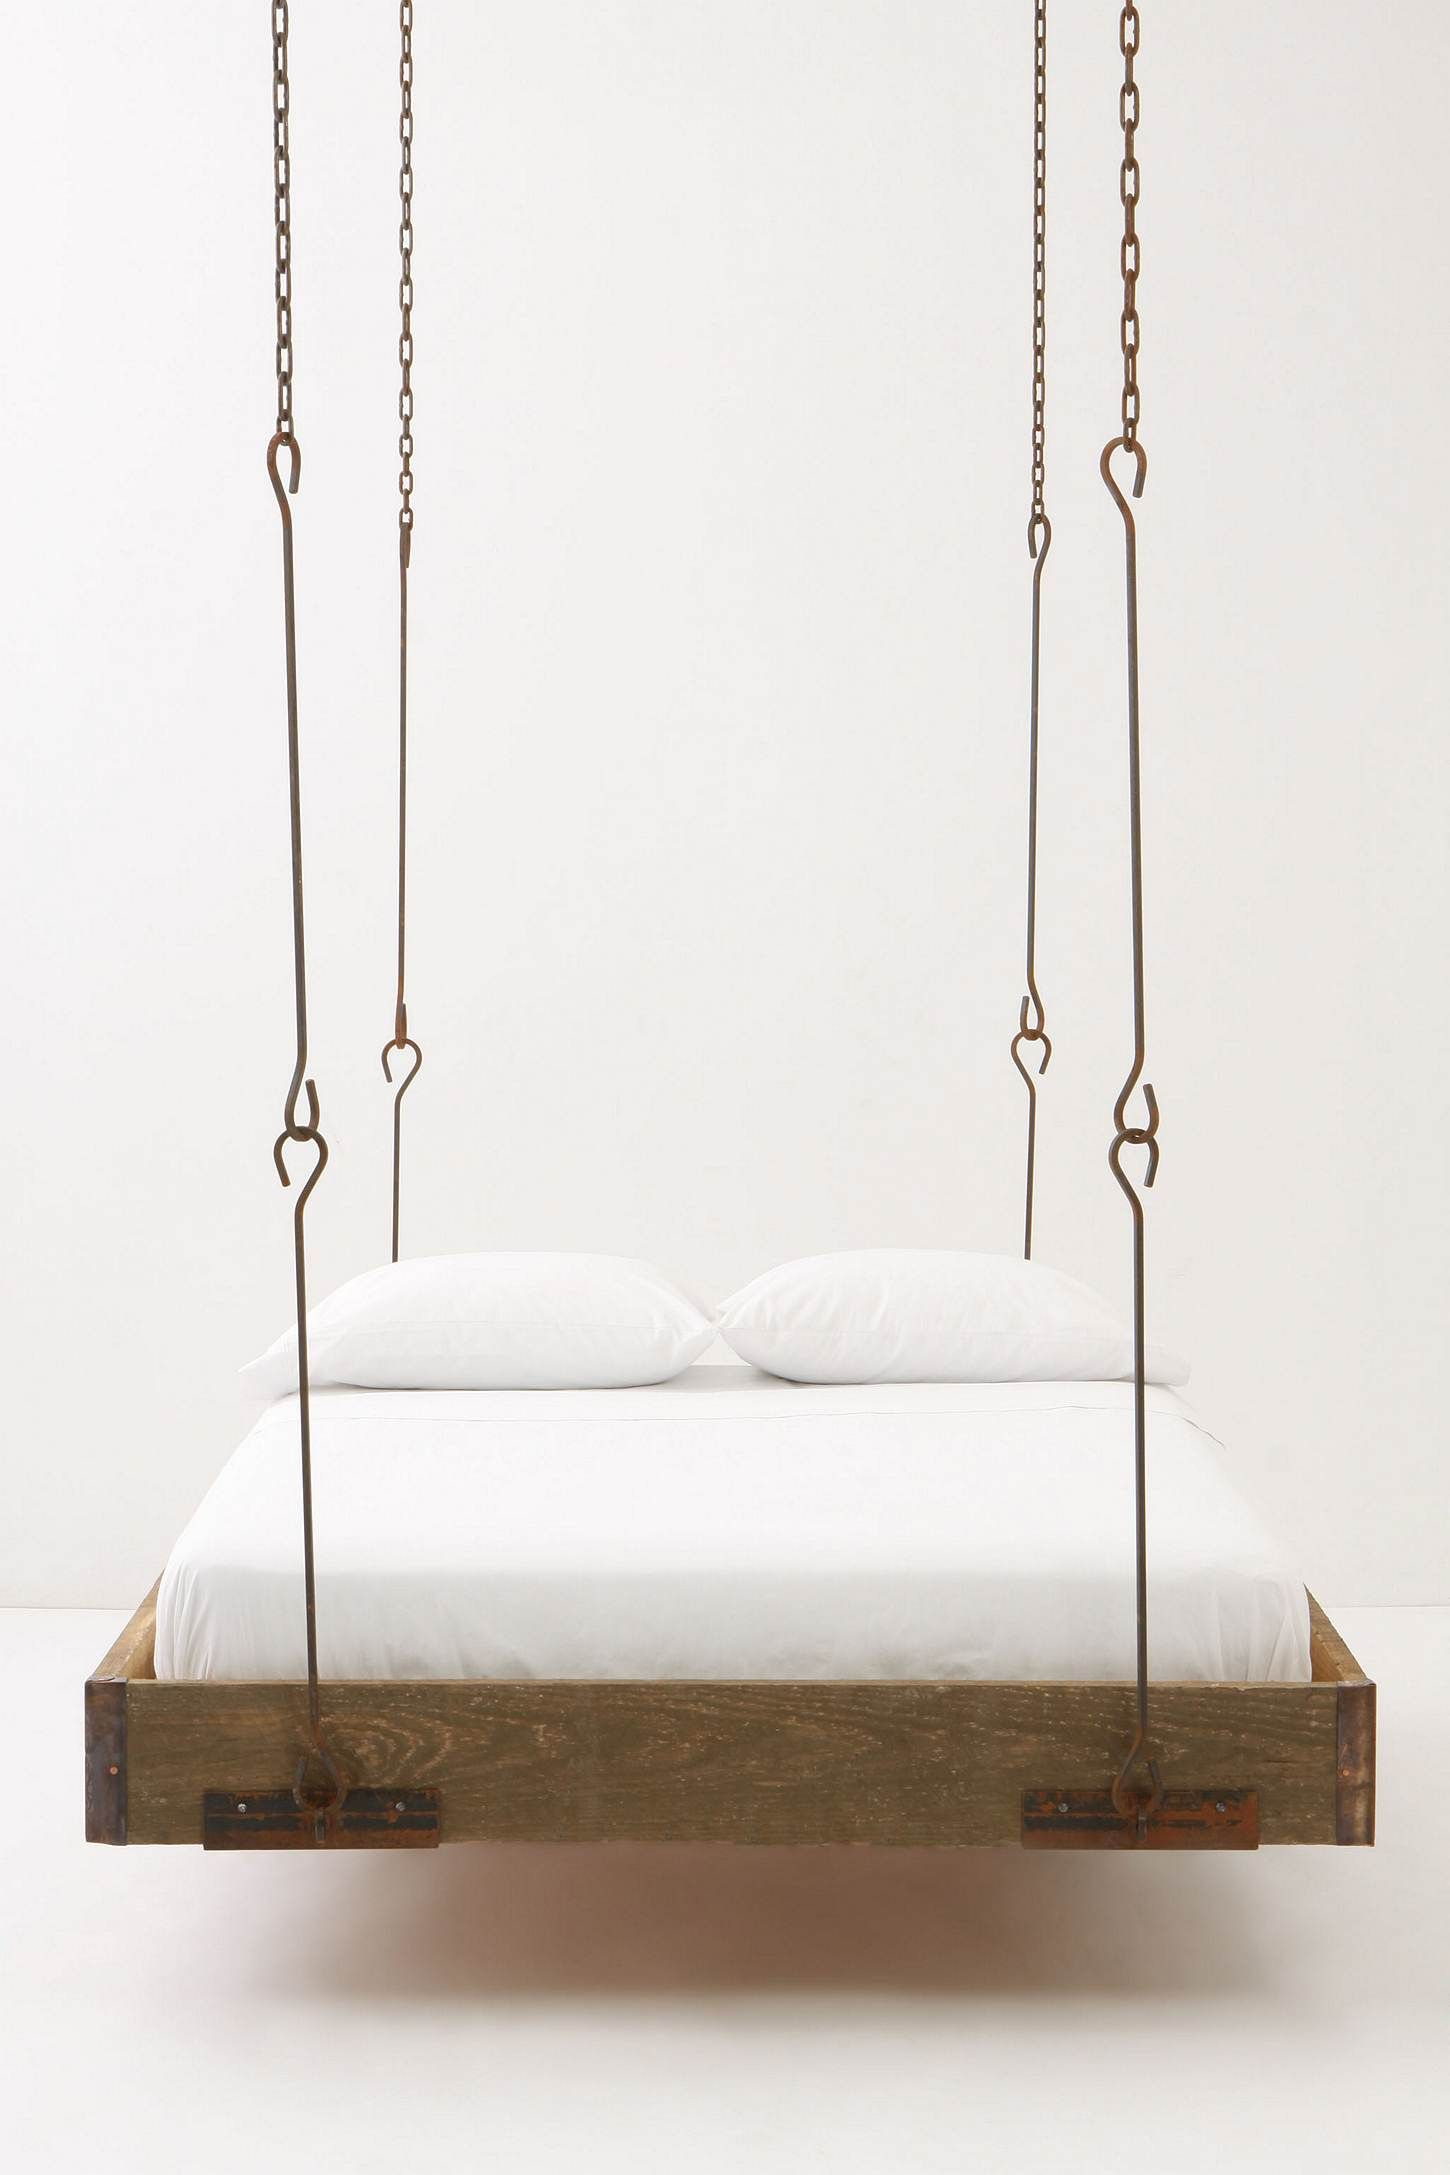 Oh Swinging Bed How I Want To Love Thee But Me Thinks This Would Create New Meaning To If The House Is A Rockin Hanging Bed Hanging Beds Bed Swing